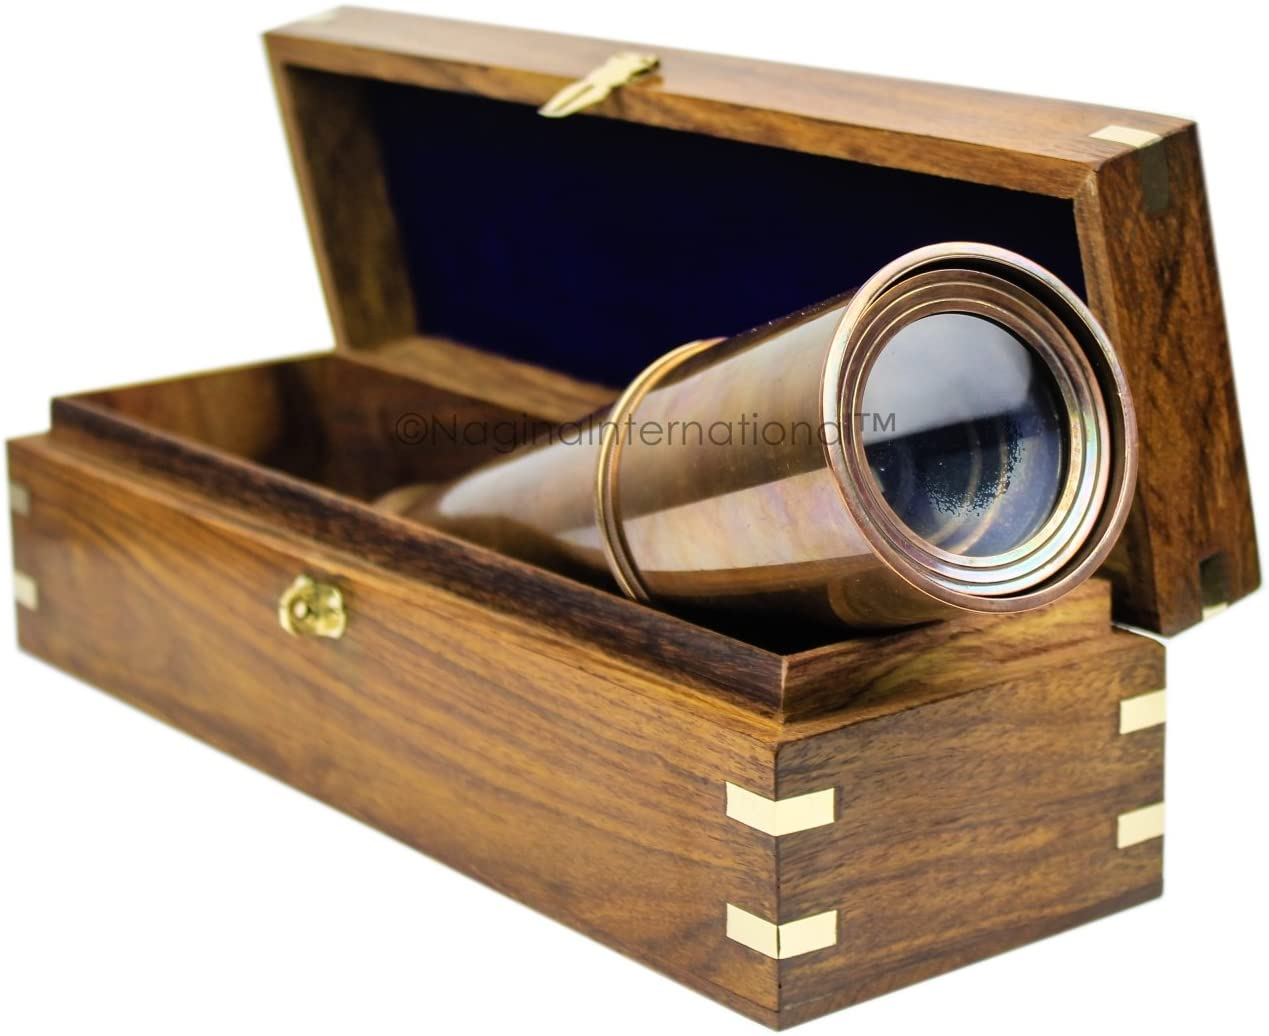 Nagina International Deluxe Nautical Pirate Boat Brass Spyglass with Functional Optical Zooms & Genuine Rosewood Storing Case Anchor Emblem Inlaid 32 Inches, Antique Copper (W/Box)